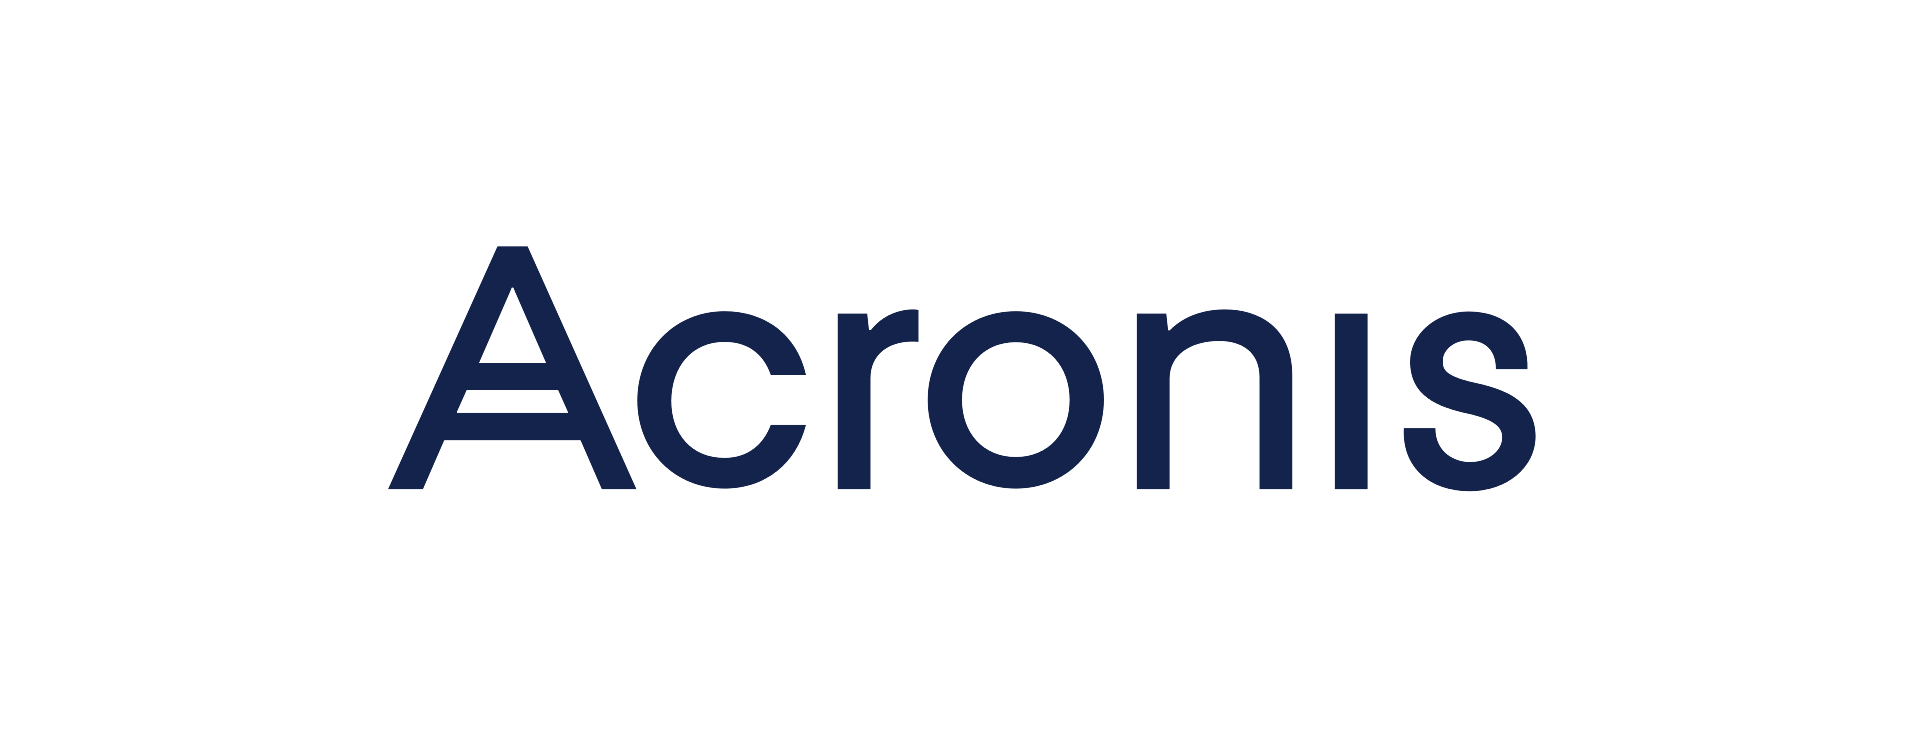 Acronis True Image 2021 Adds Vulnerability Assessments, Enabling Users to Close Security Gaps in Their Systems